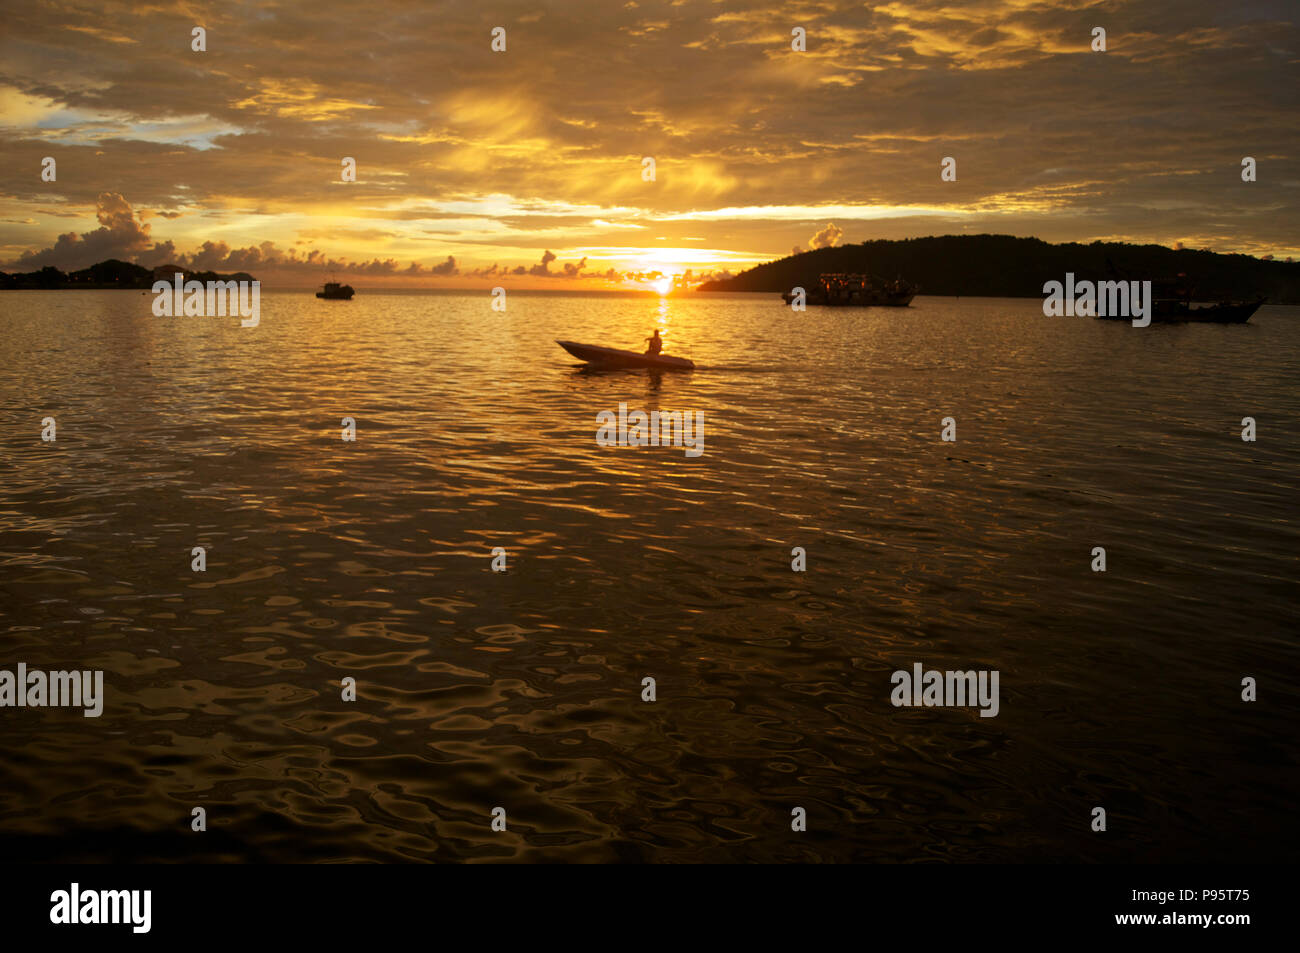 sunset over the south china sea - Stock Image